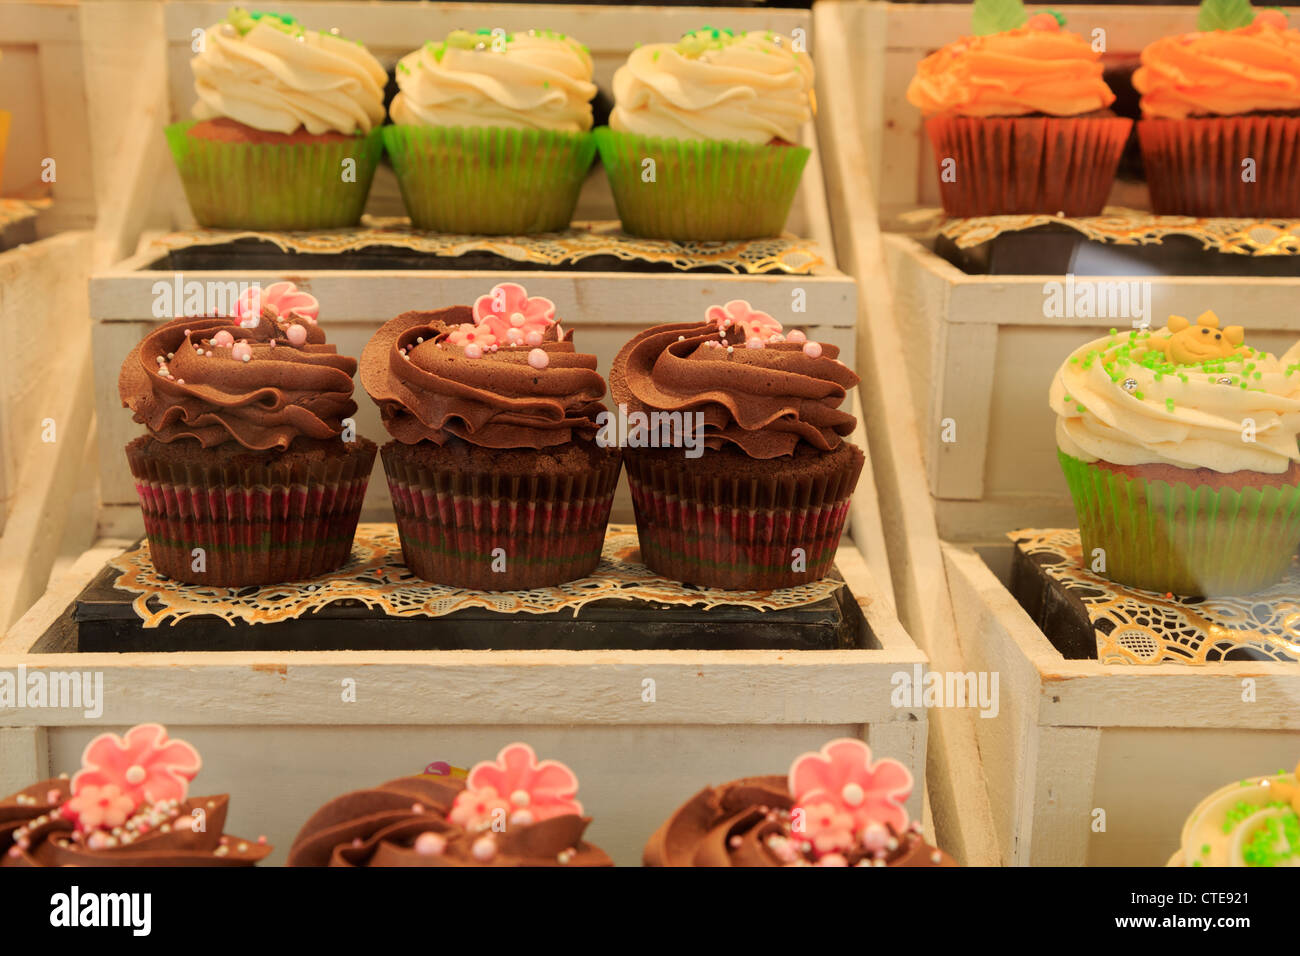 A Display Of Pretty Cupcakes In A Shop Window Stock Photo